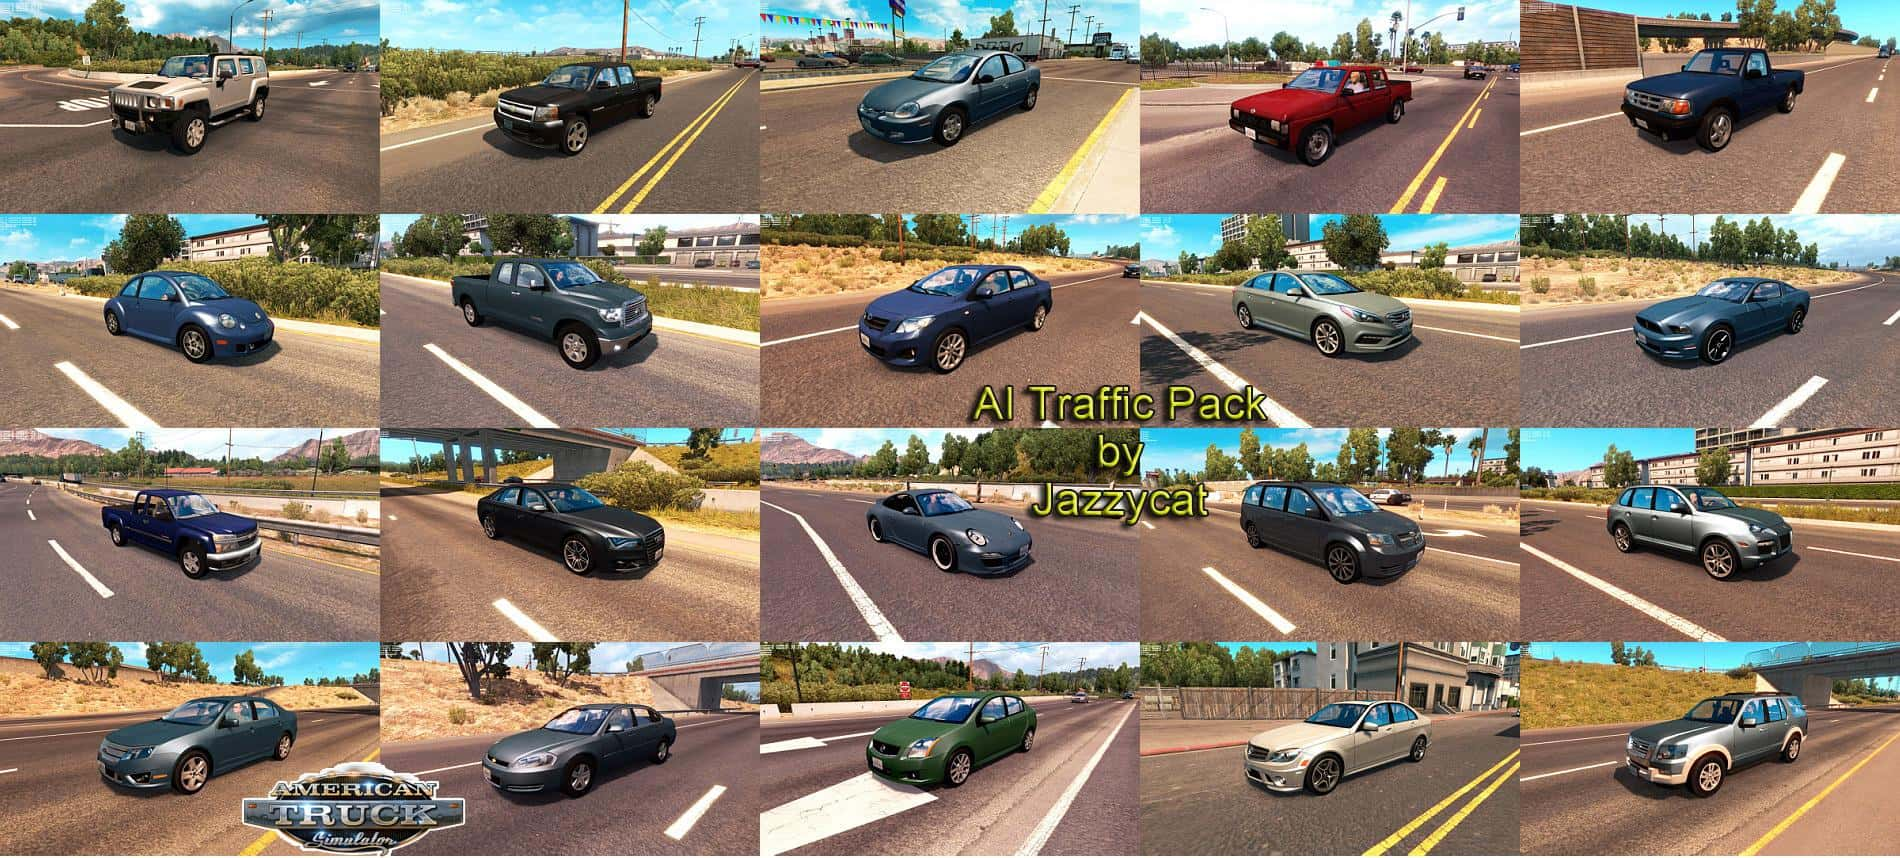 AI TRAFFIC PACK BY JAZZYCAT V1 6 2 MOD - American Truck